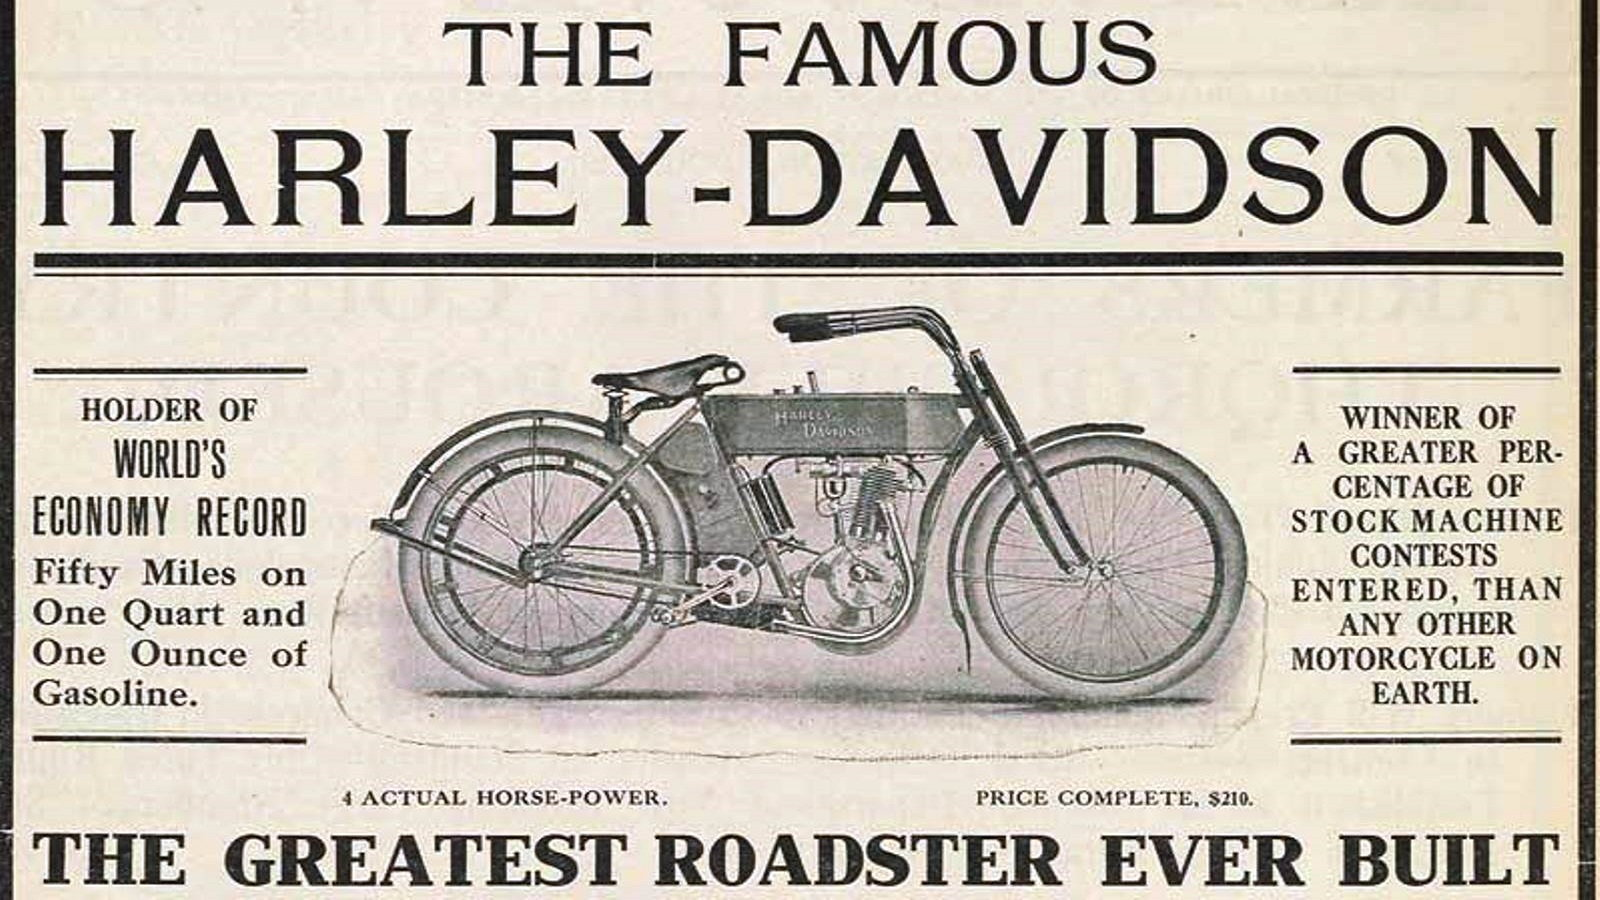 Harley Davidson Advertising: Advertising From The Past